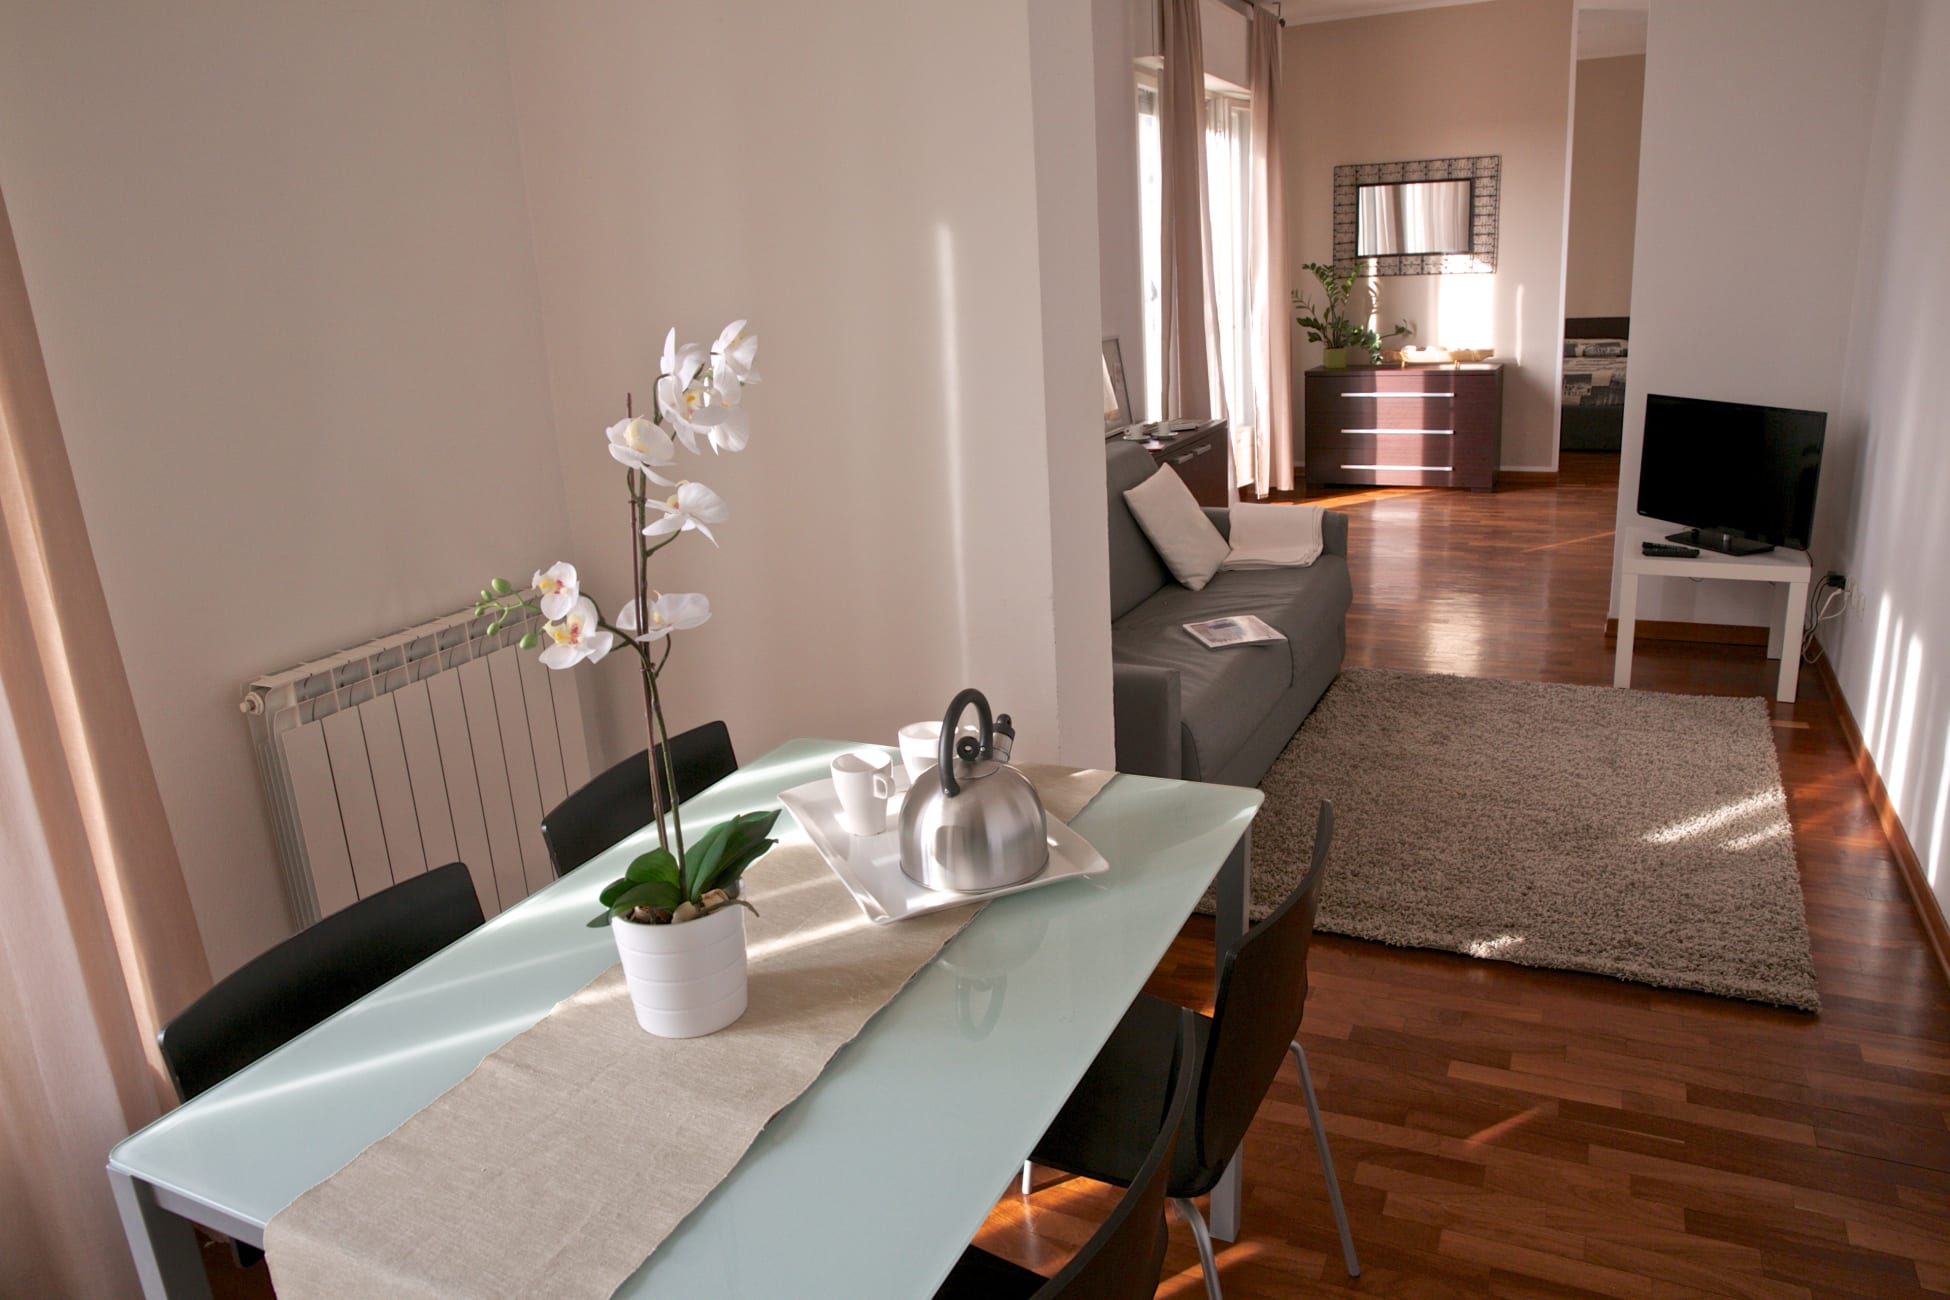 Vacation Rental Residence Le Terrazze Trieste Trivago Com